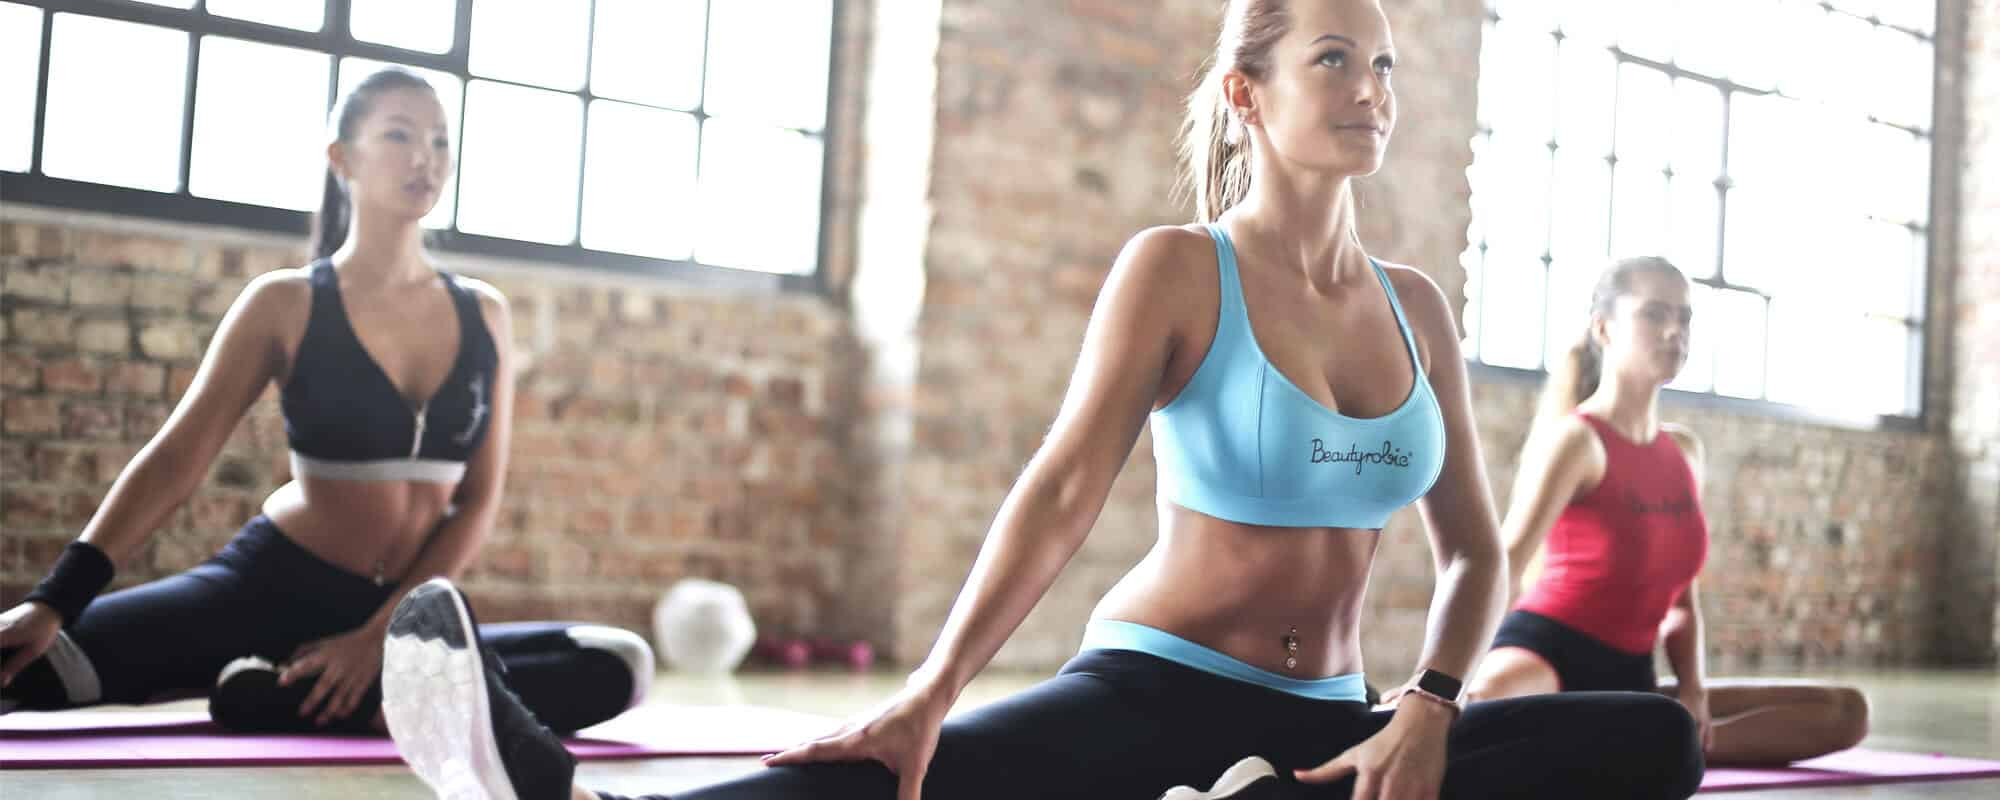 Your First Workout Savvy Way